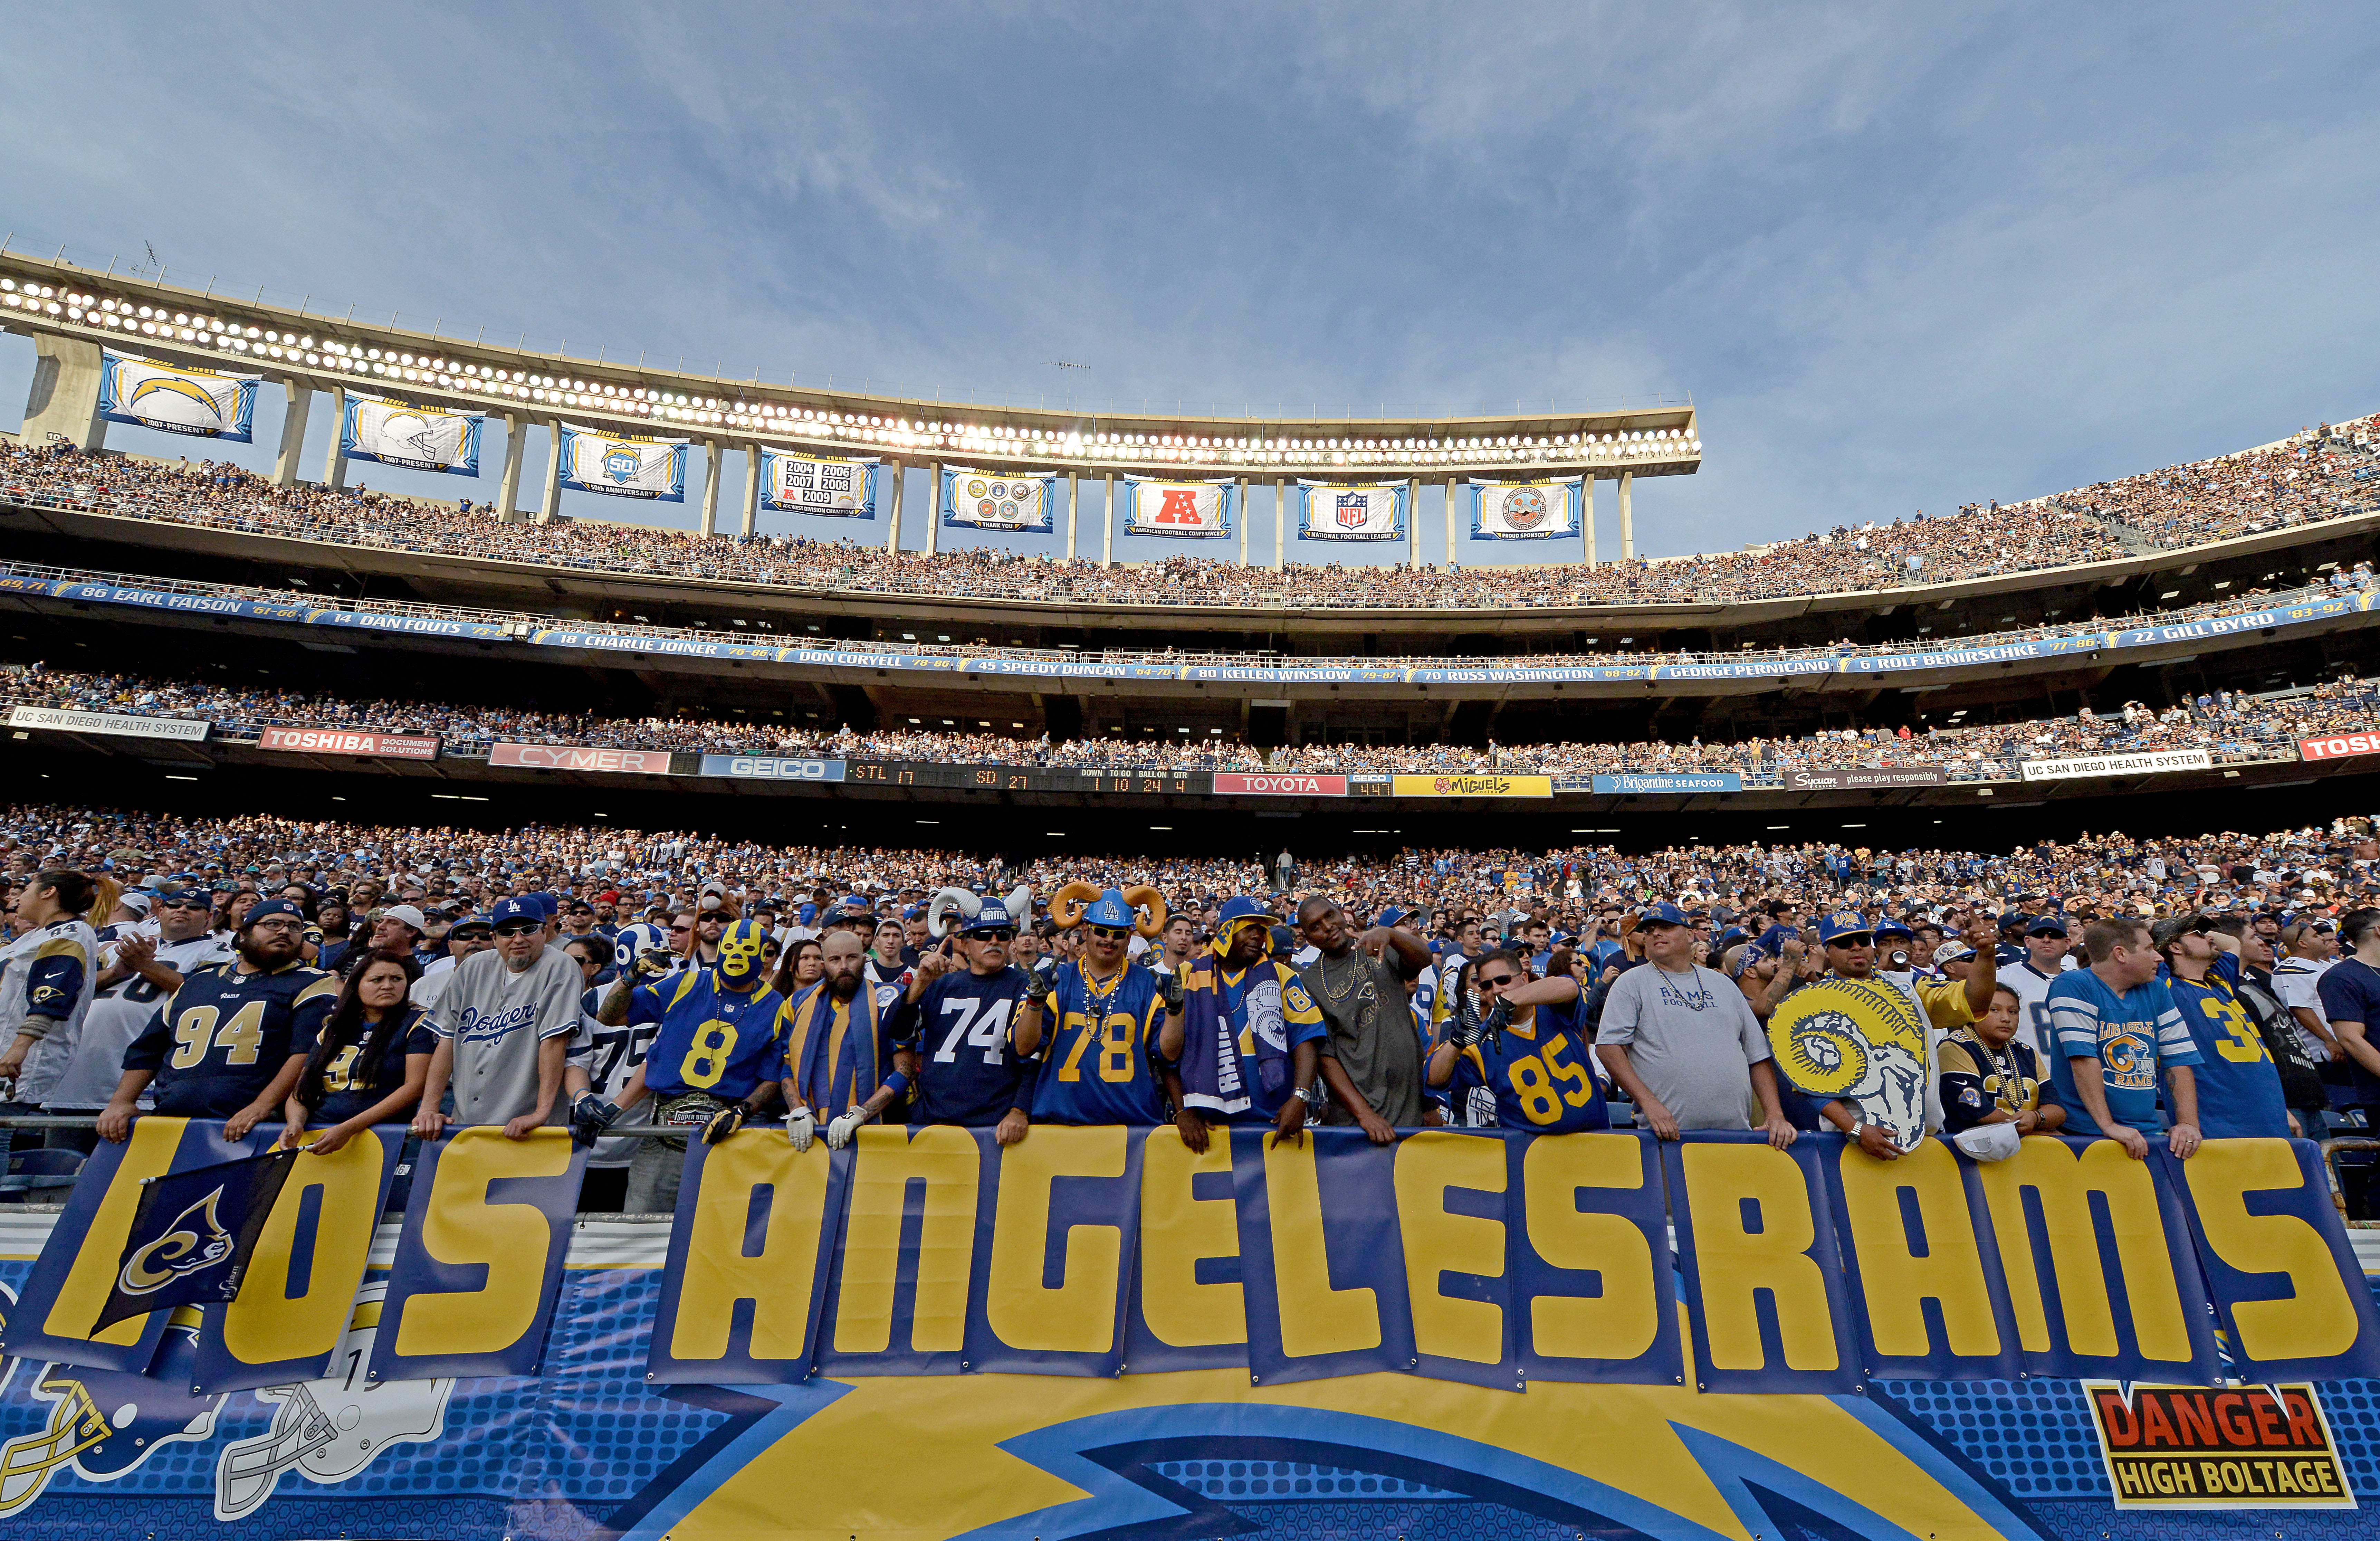 Twitter Went Nuts After Raiders Lose Stadium and Rams Move to LA